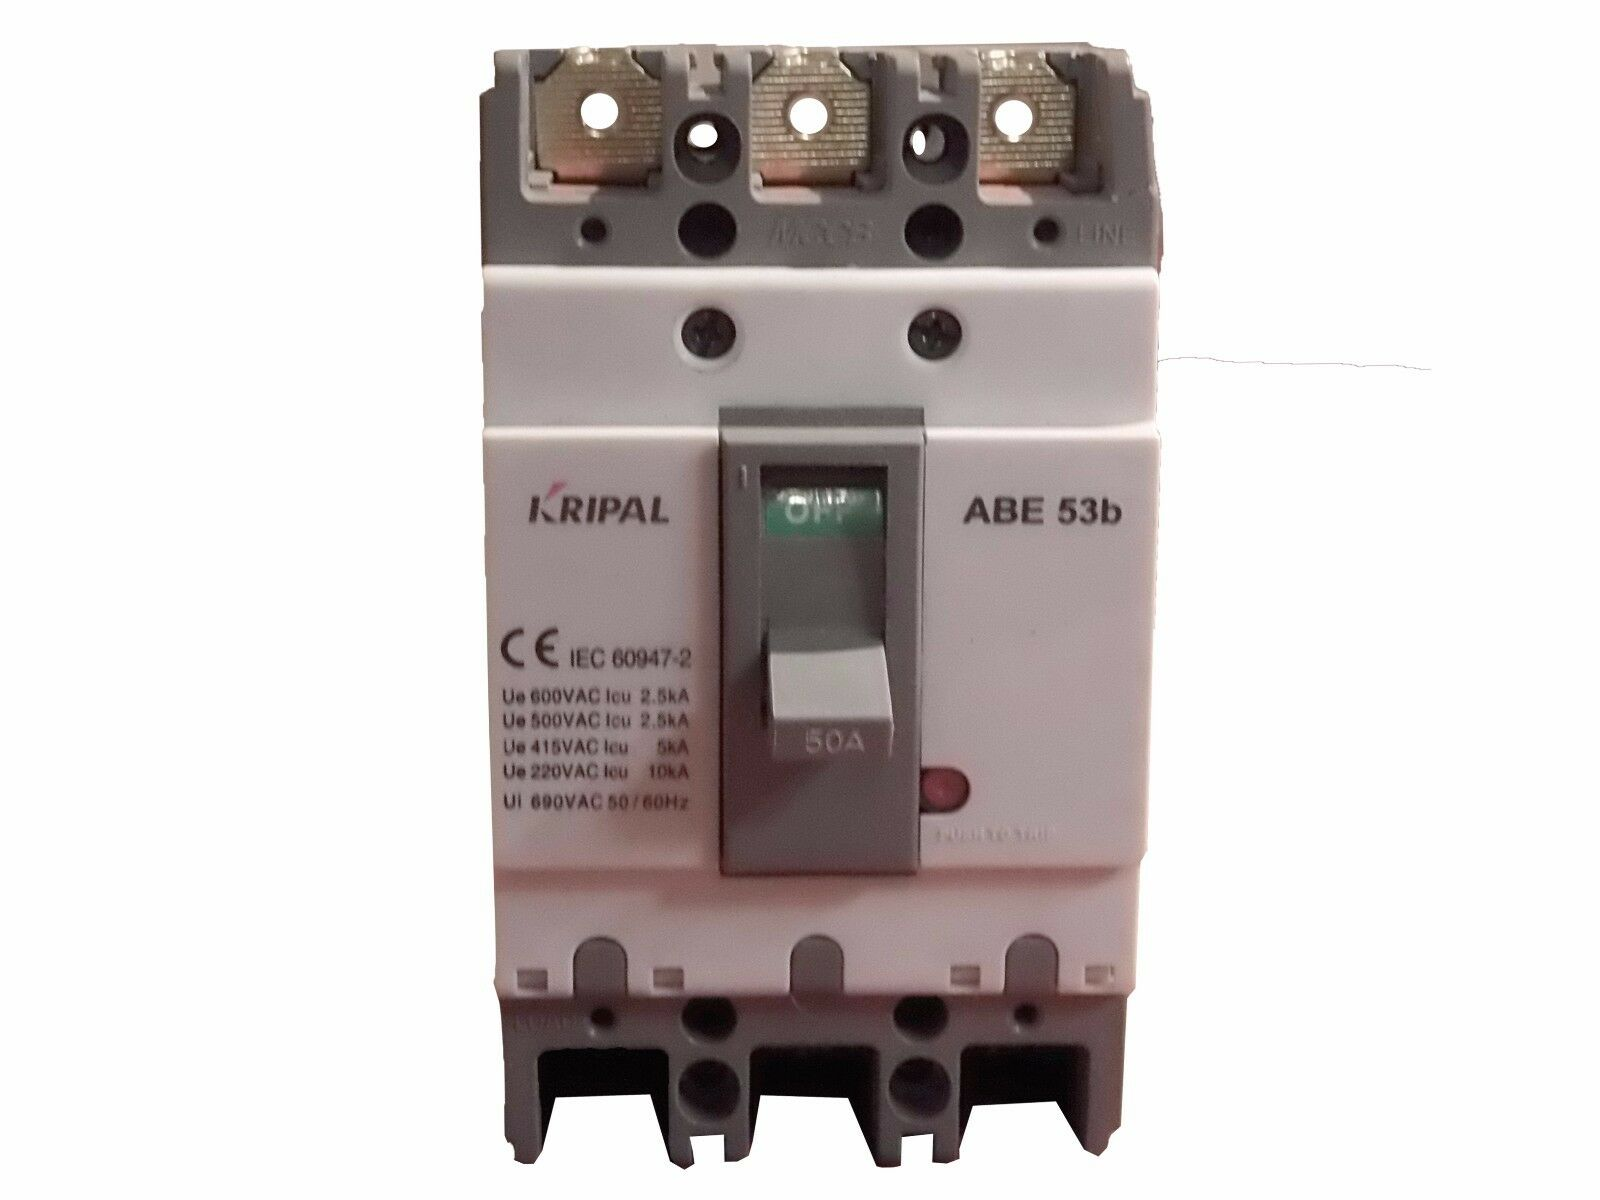 THREE PHASE Cut-Off Switch KRIPAL ABE53B 50 Amp INTERRUPTOR